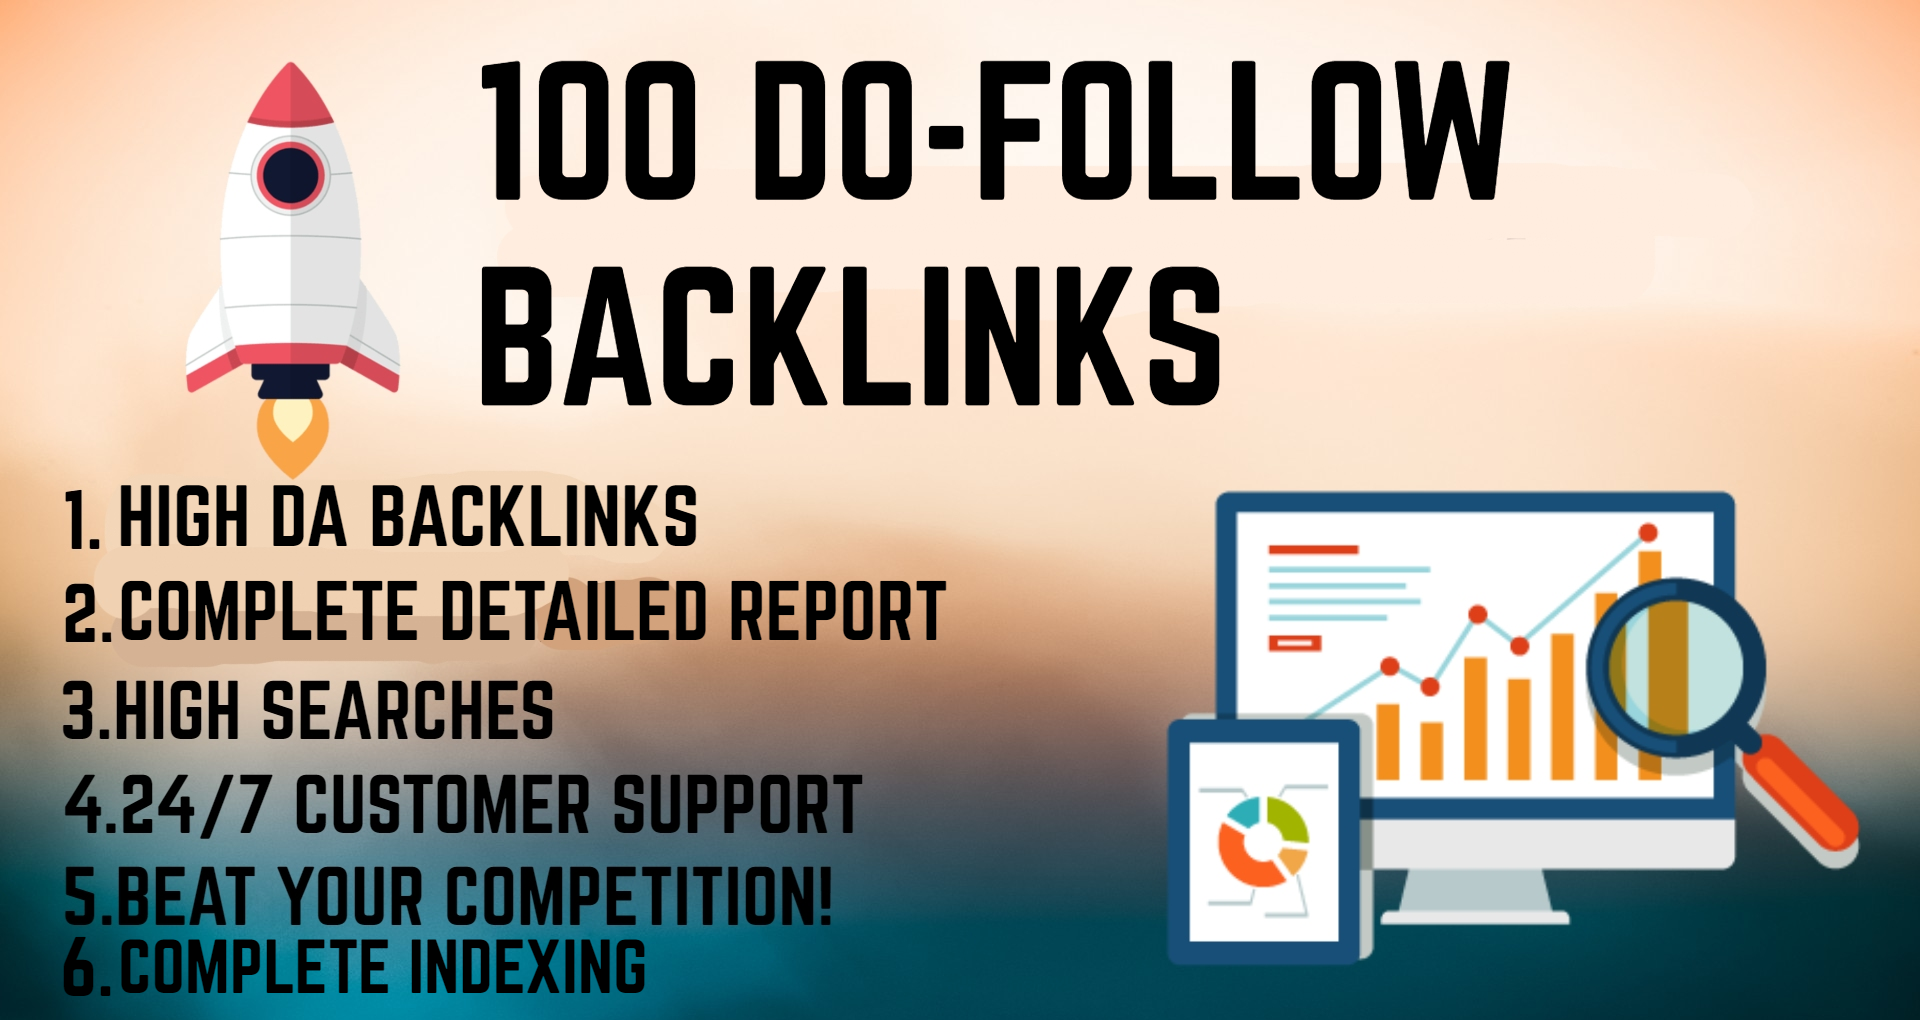 Boost your ranking with 100 do follow backlinks with in 24 hours